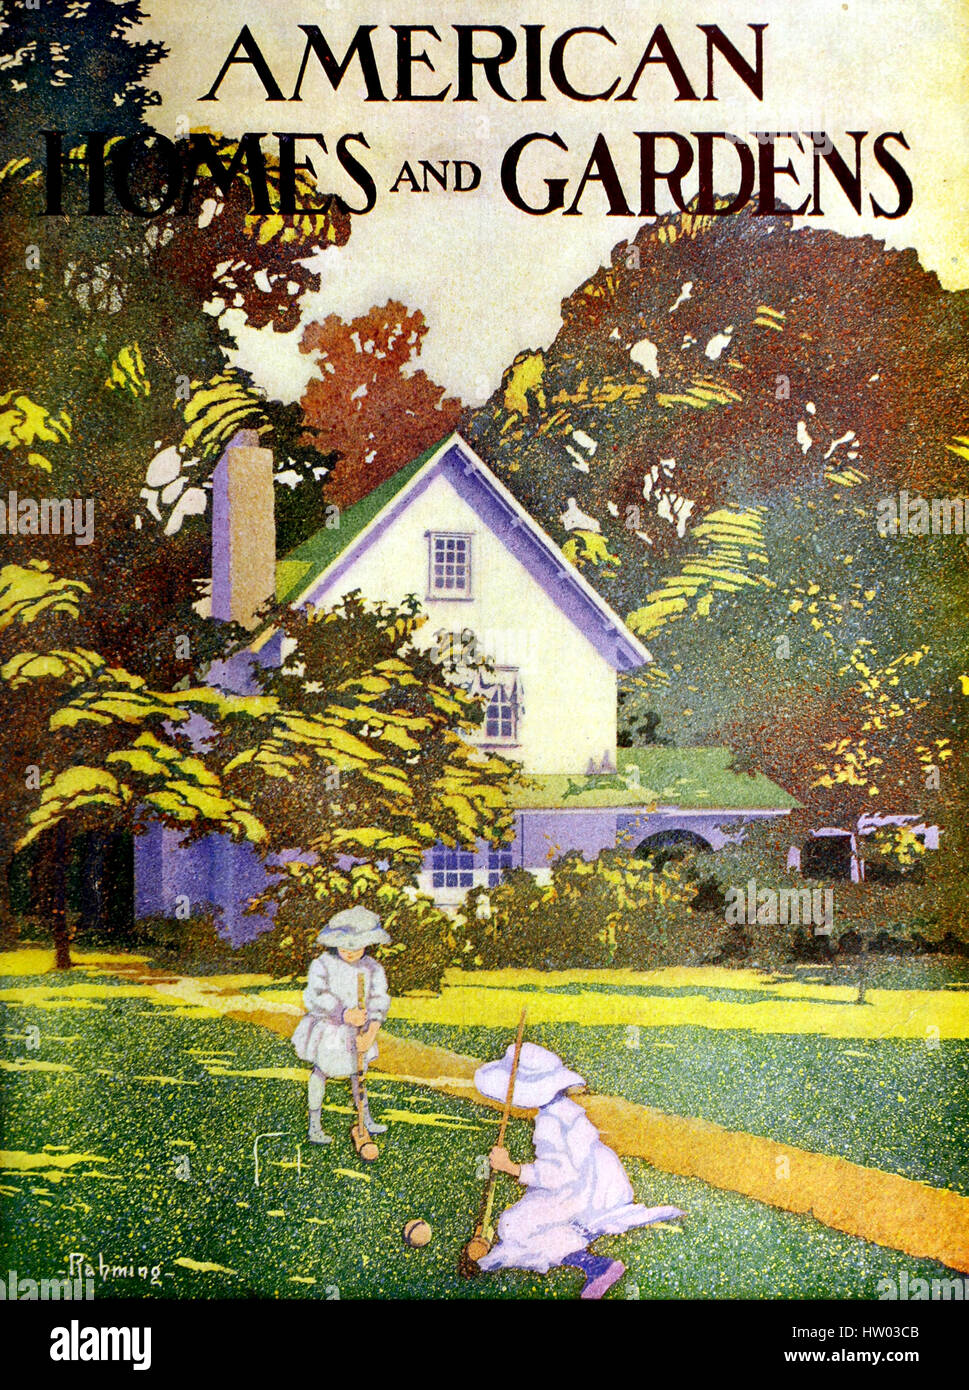 AMERICAN HOMES AND GARDENS monthly magazine. Cover of a  1910 edition - Stock Image